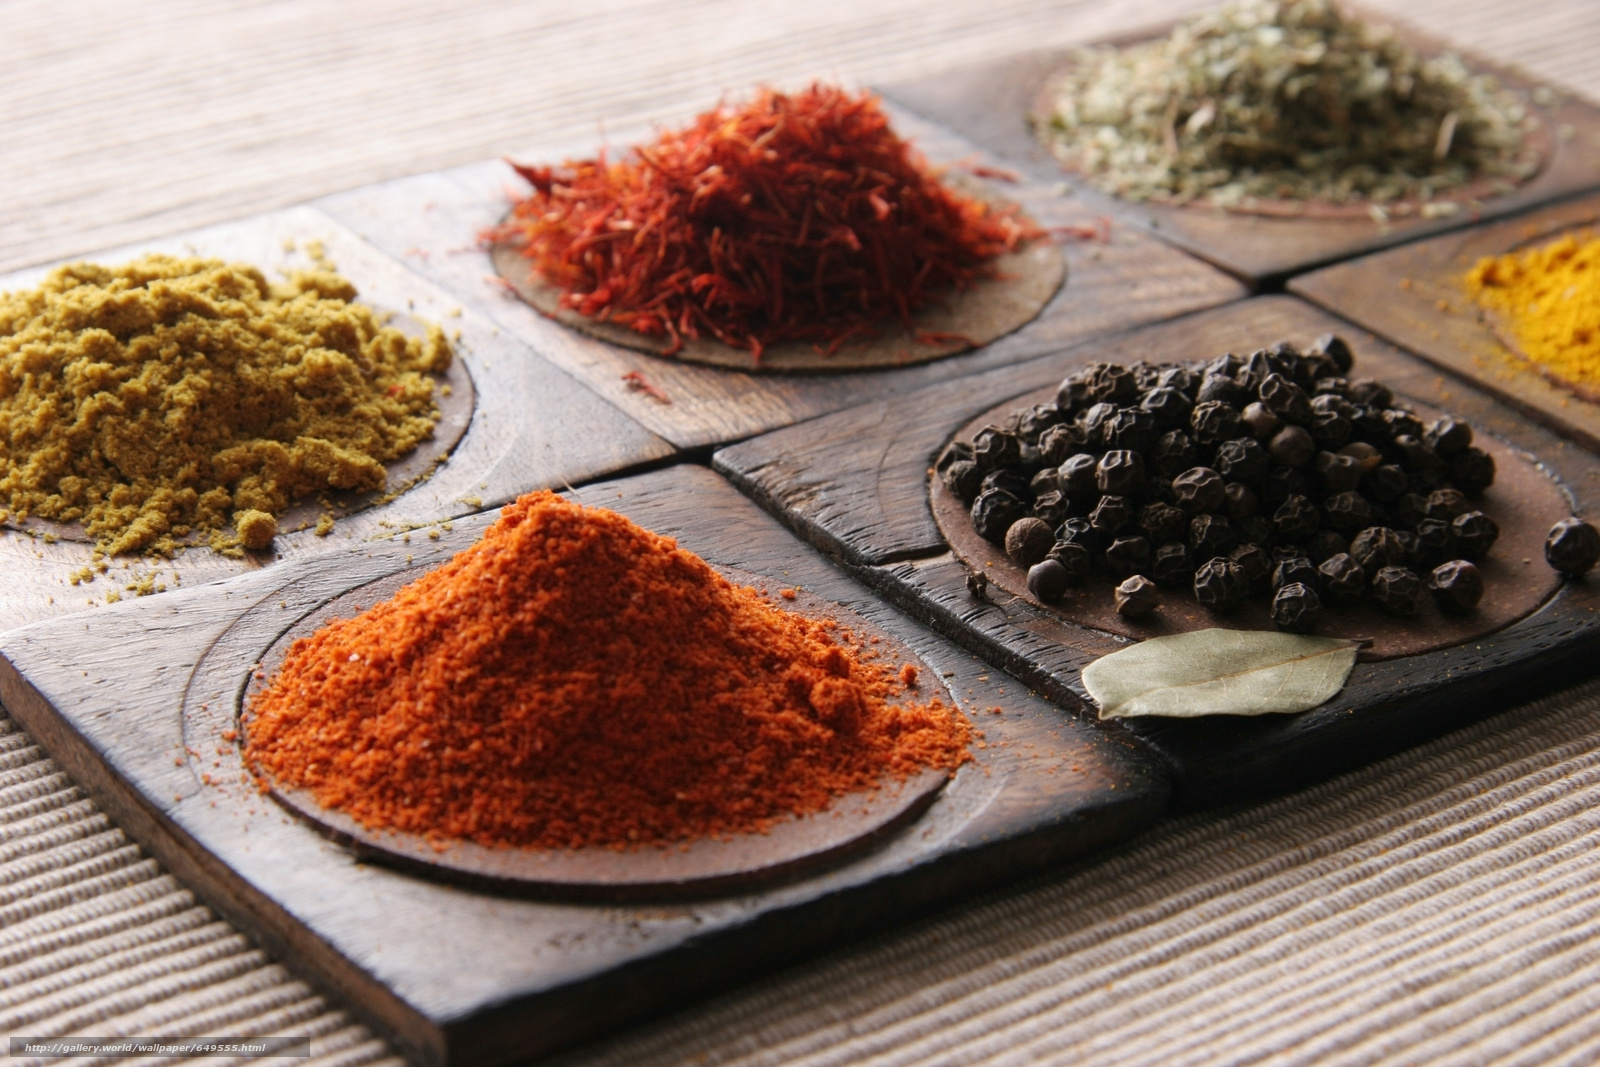 Download wallpaper spices,  seasoning,  food,  cookery free desktop wallpaper in the resolution 3504x2336 — picture №649555